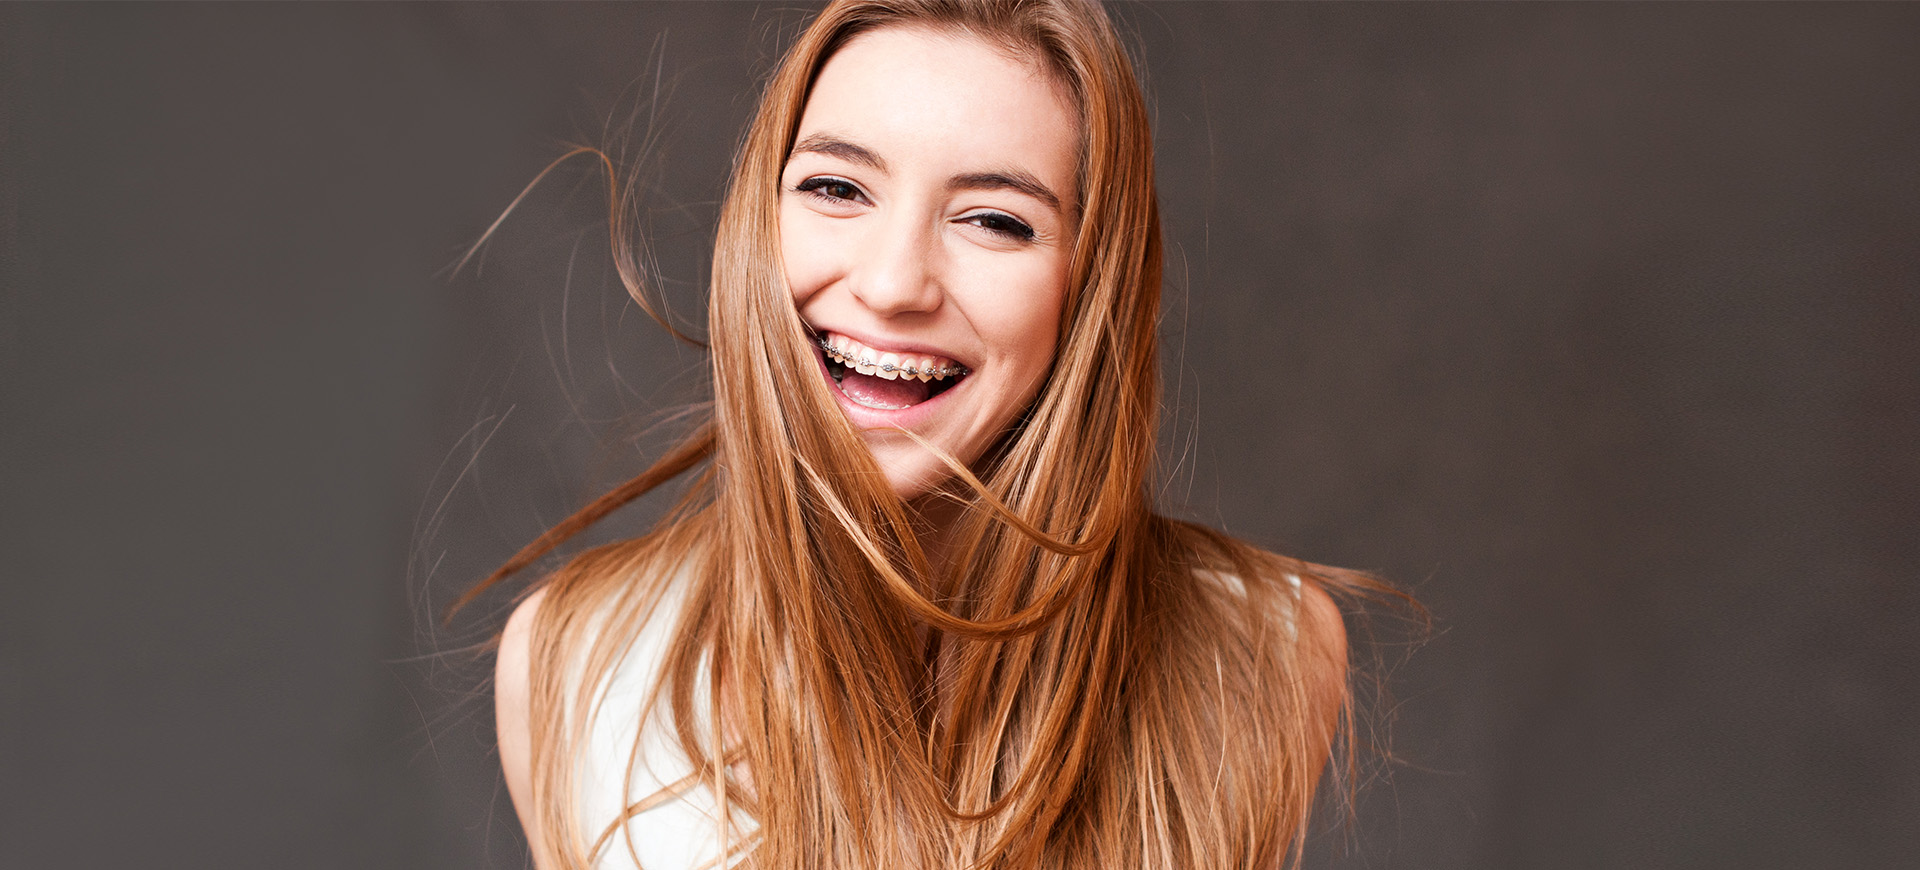 How Much Do Braces Cost In Australia? – The Average Price of